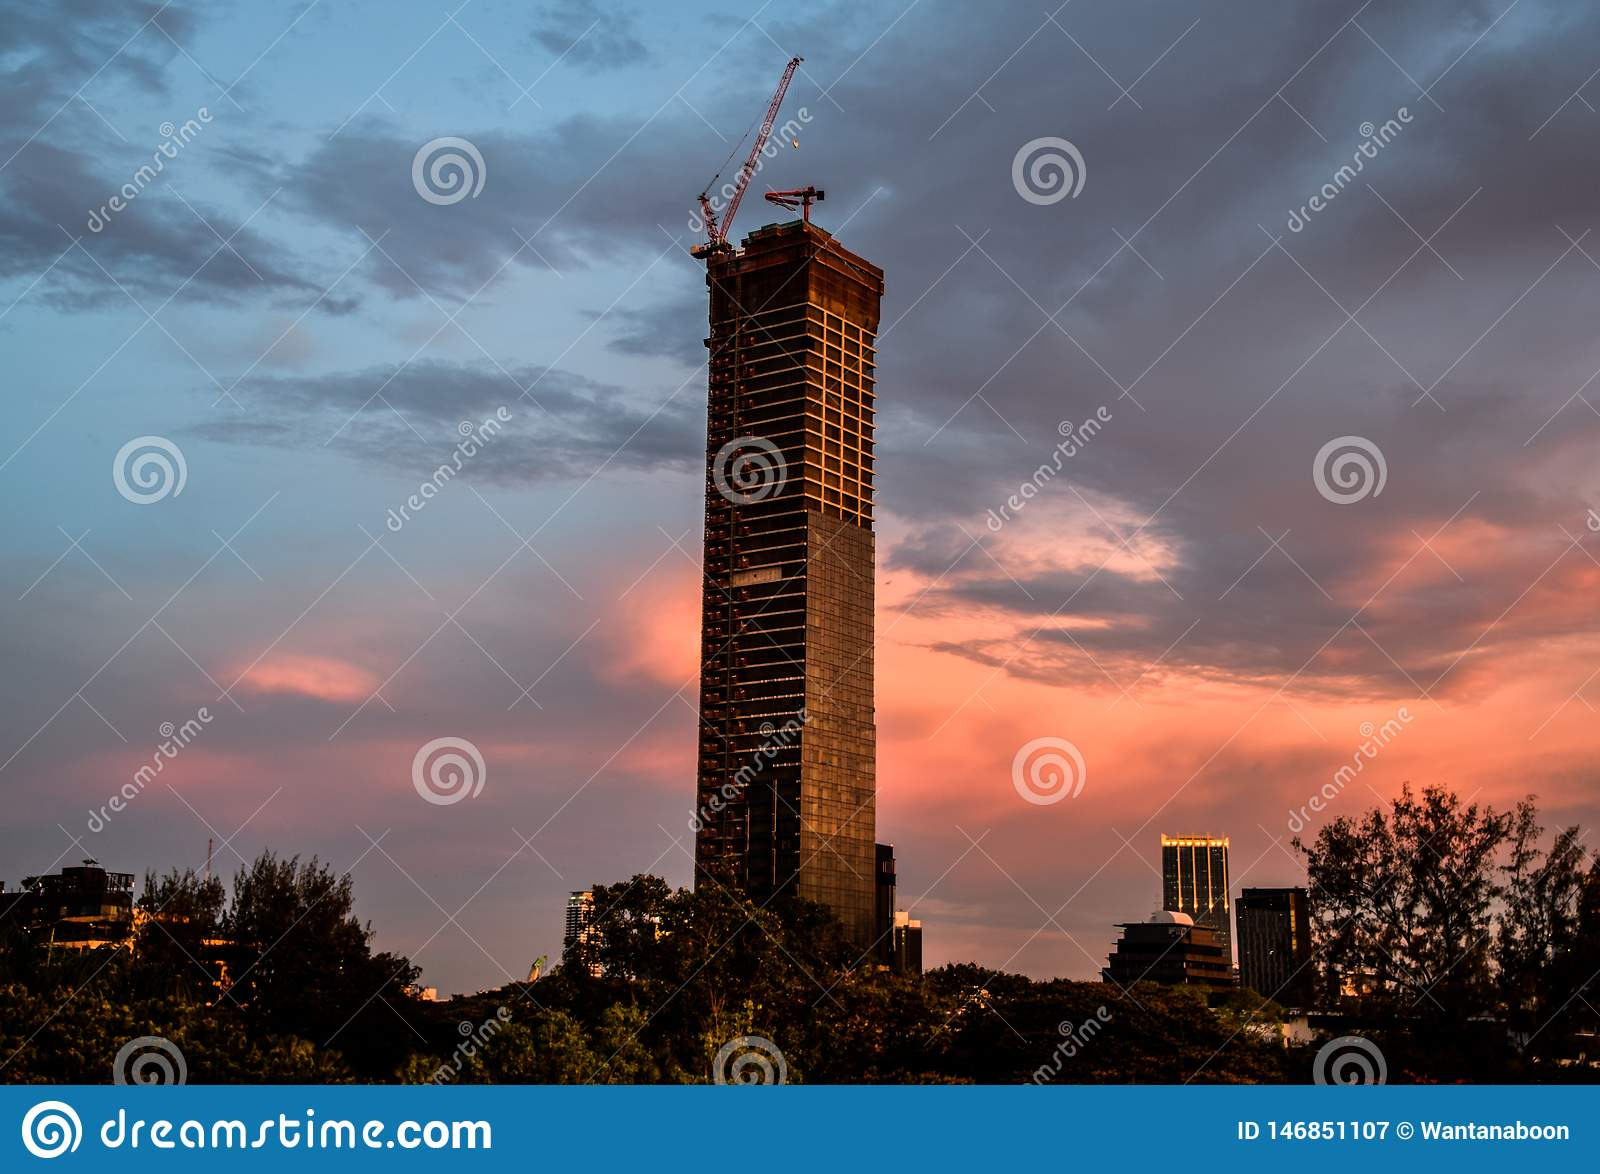 Tower crane on top of an unfinished building in the evening at Bangkok, Thailand